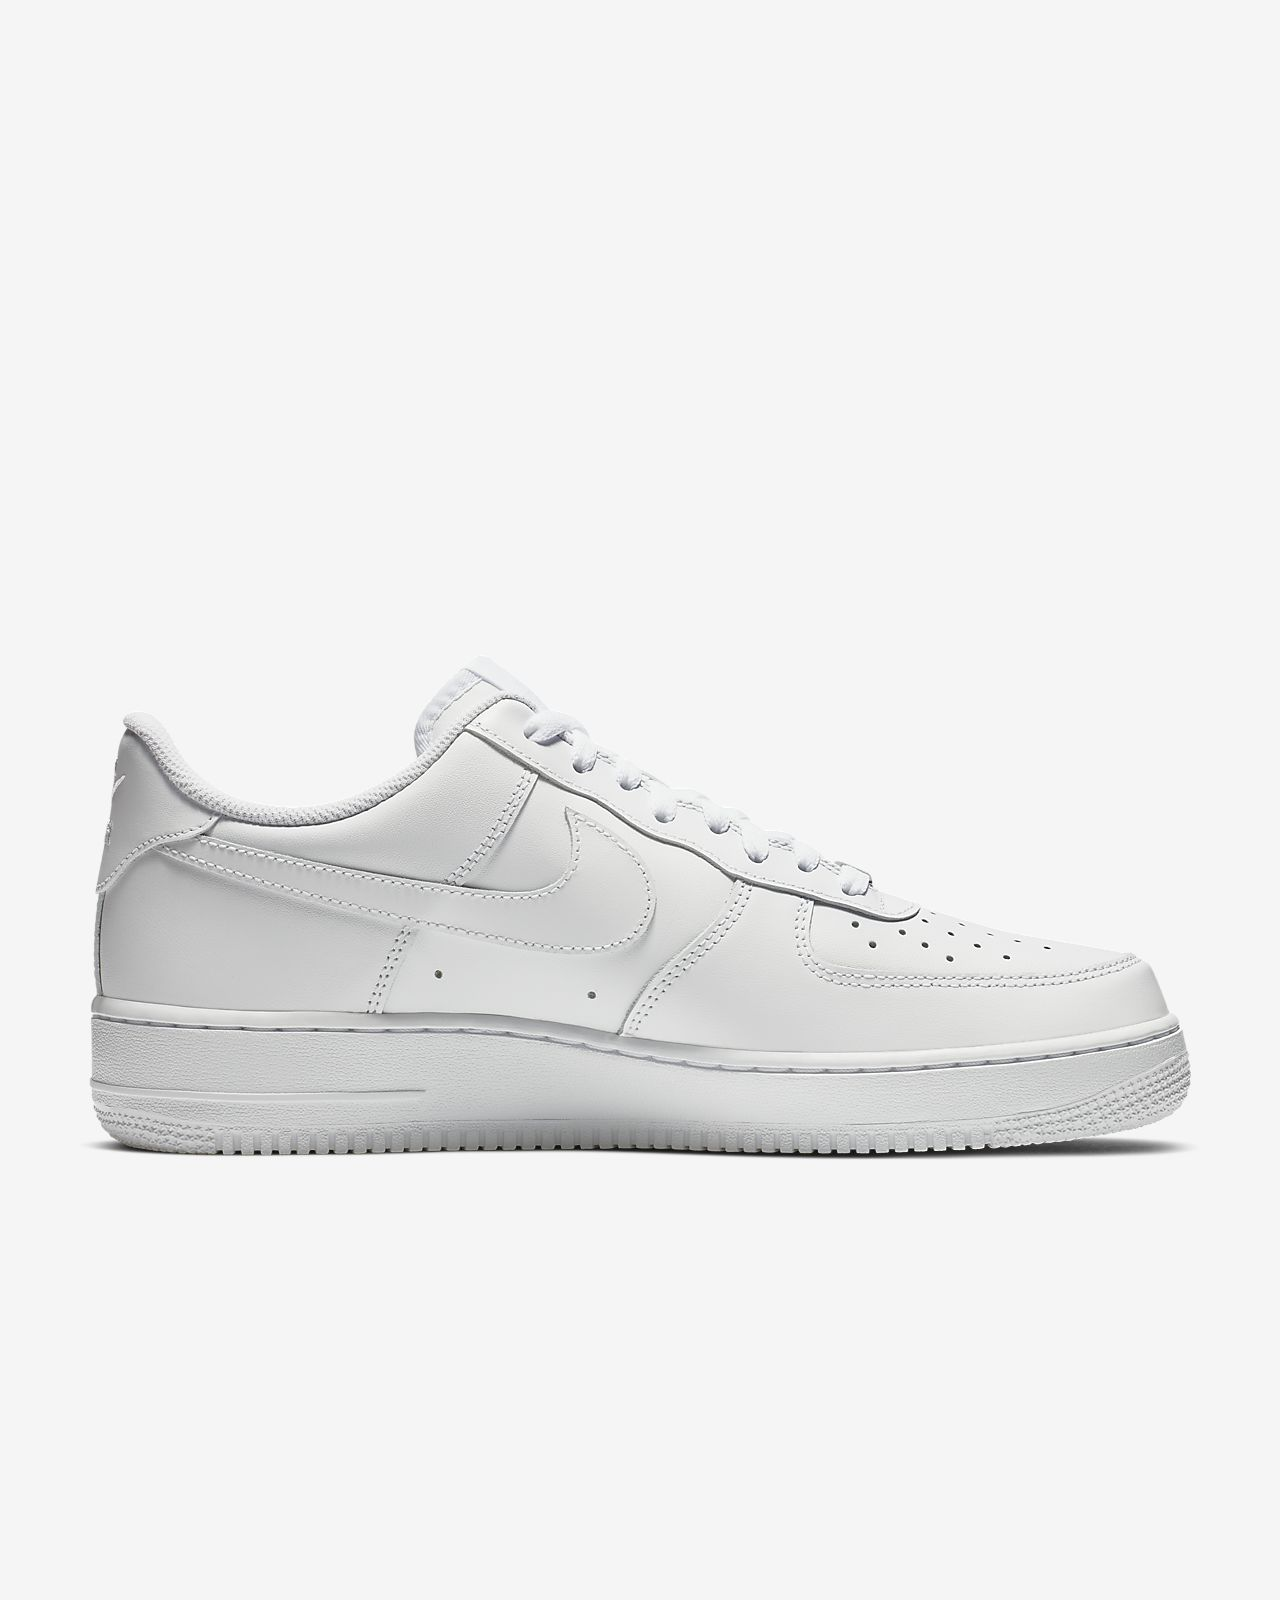 factory price 1becb 13a8e ... Nike Air Force 1 07 Schuh